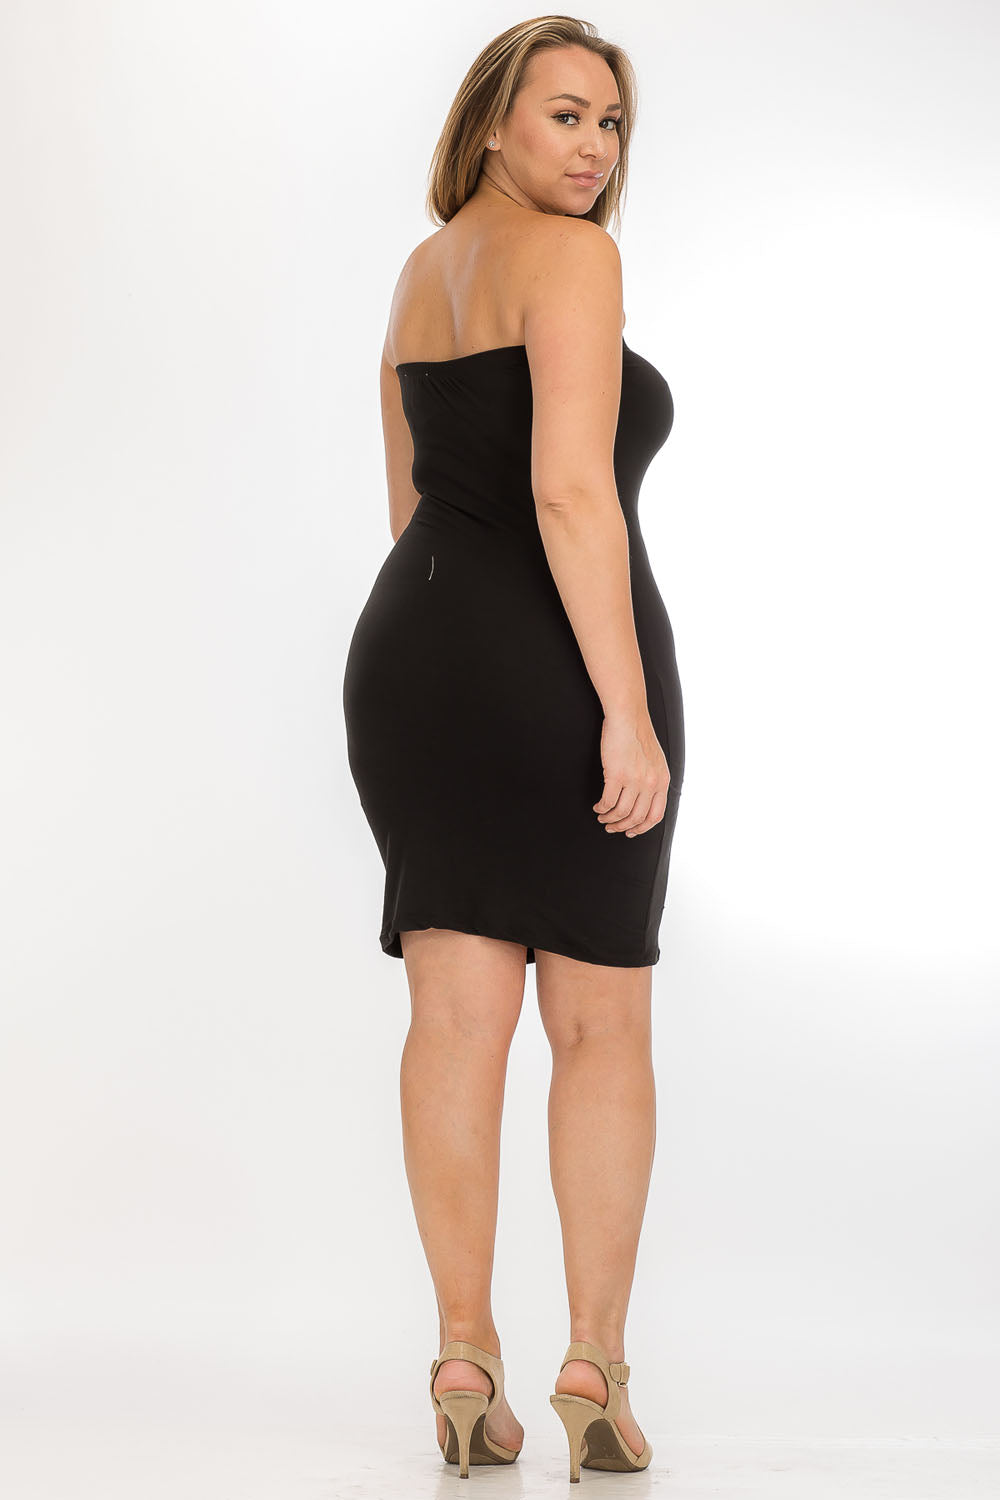 Dress - BD2124X (Plus Size) - Capella Apparel